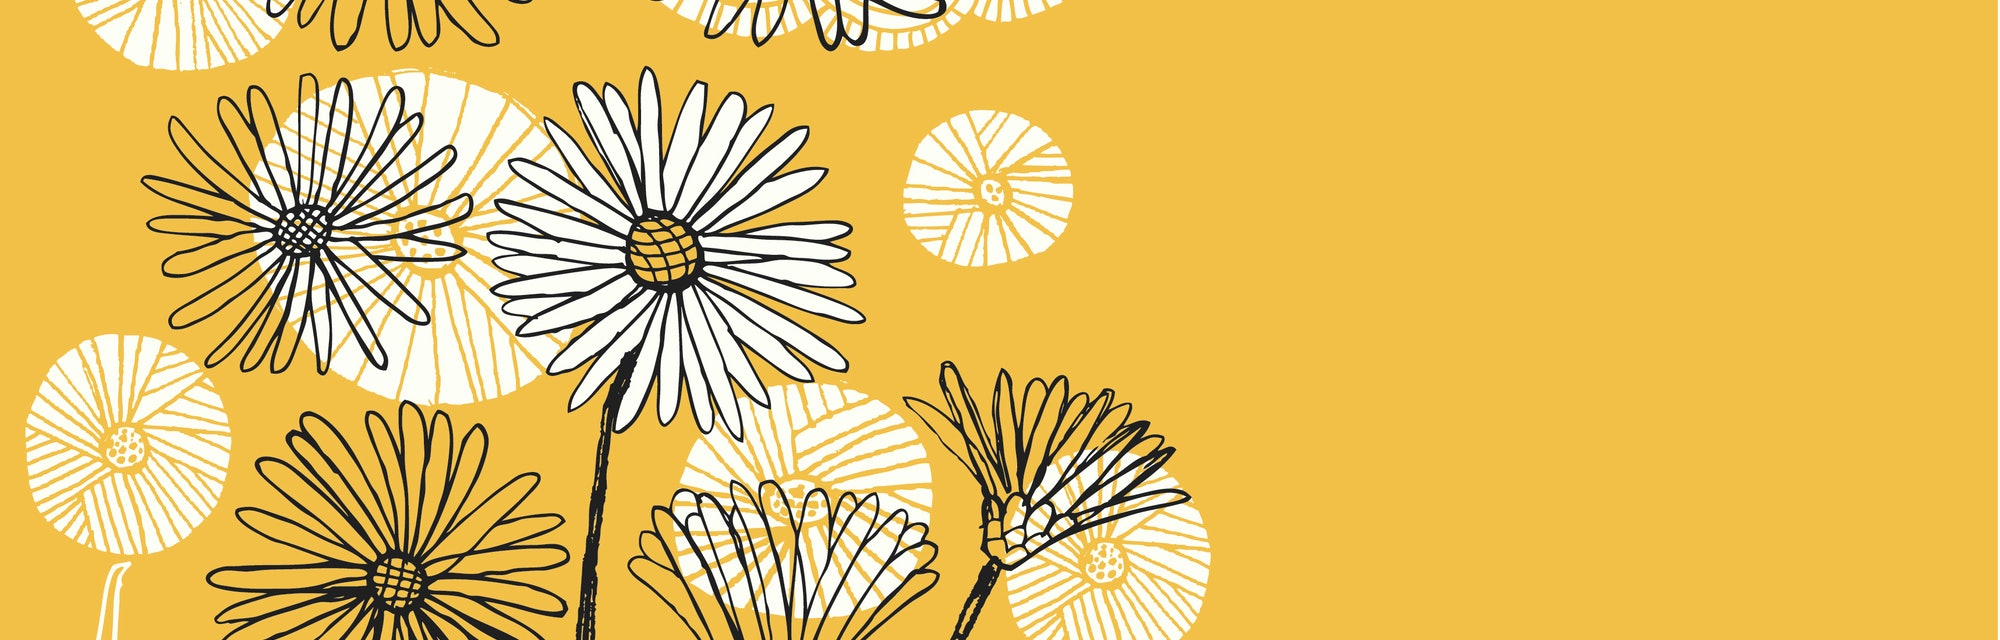 An illustration of bees around flowers.